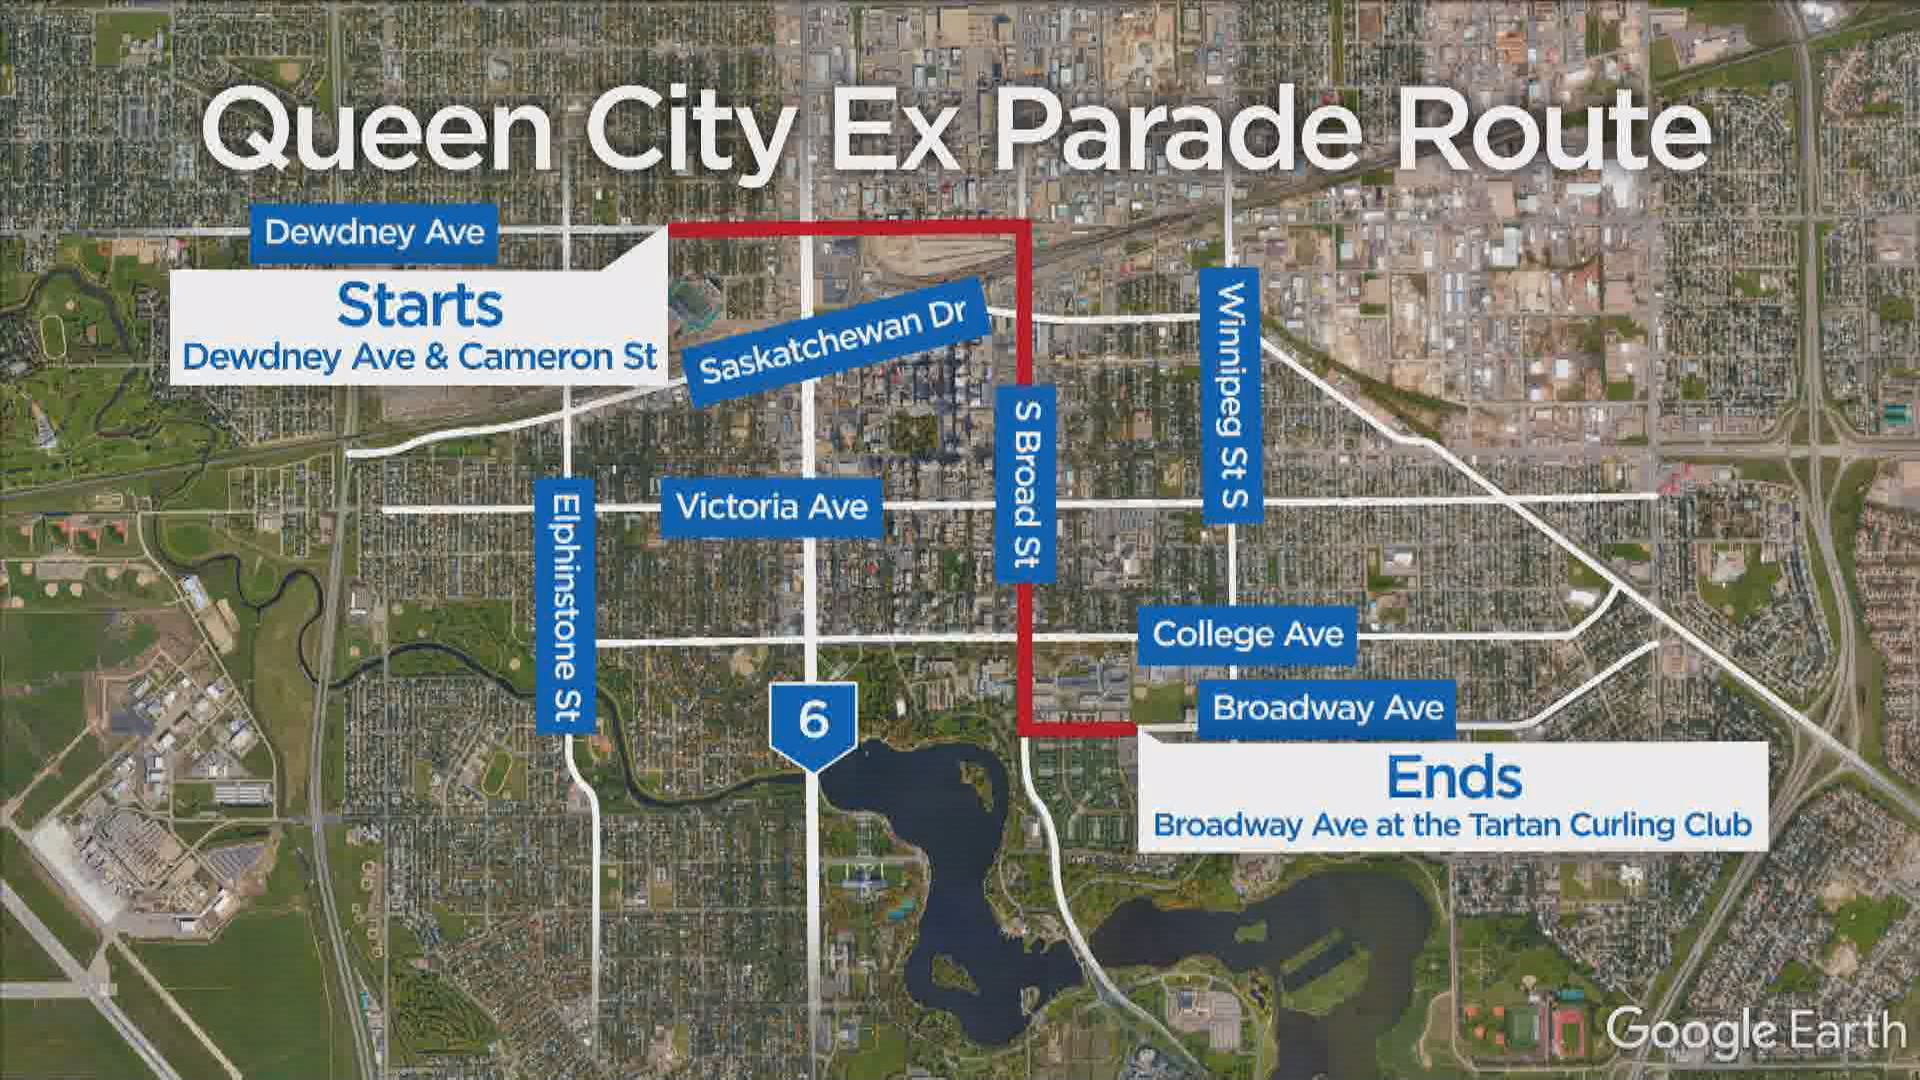 Queen City Ex kicks off tonight with annual parade downtown | Watch ...